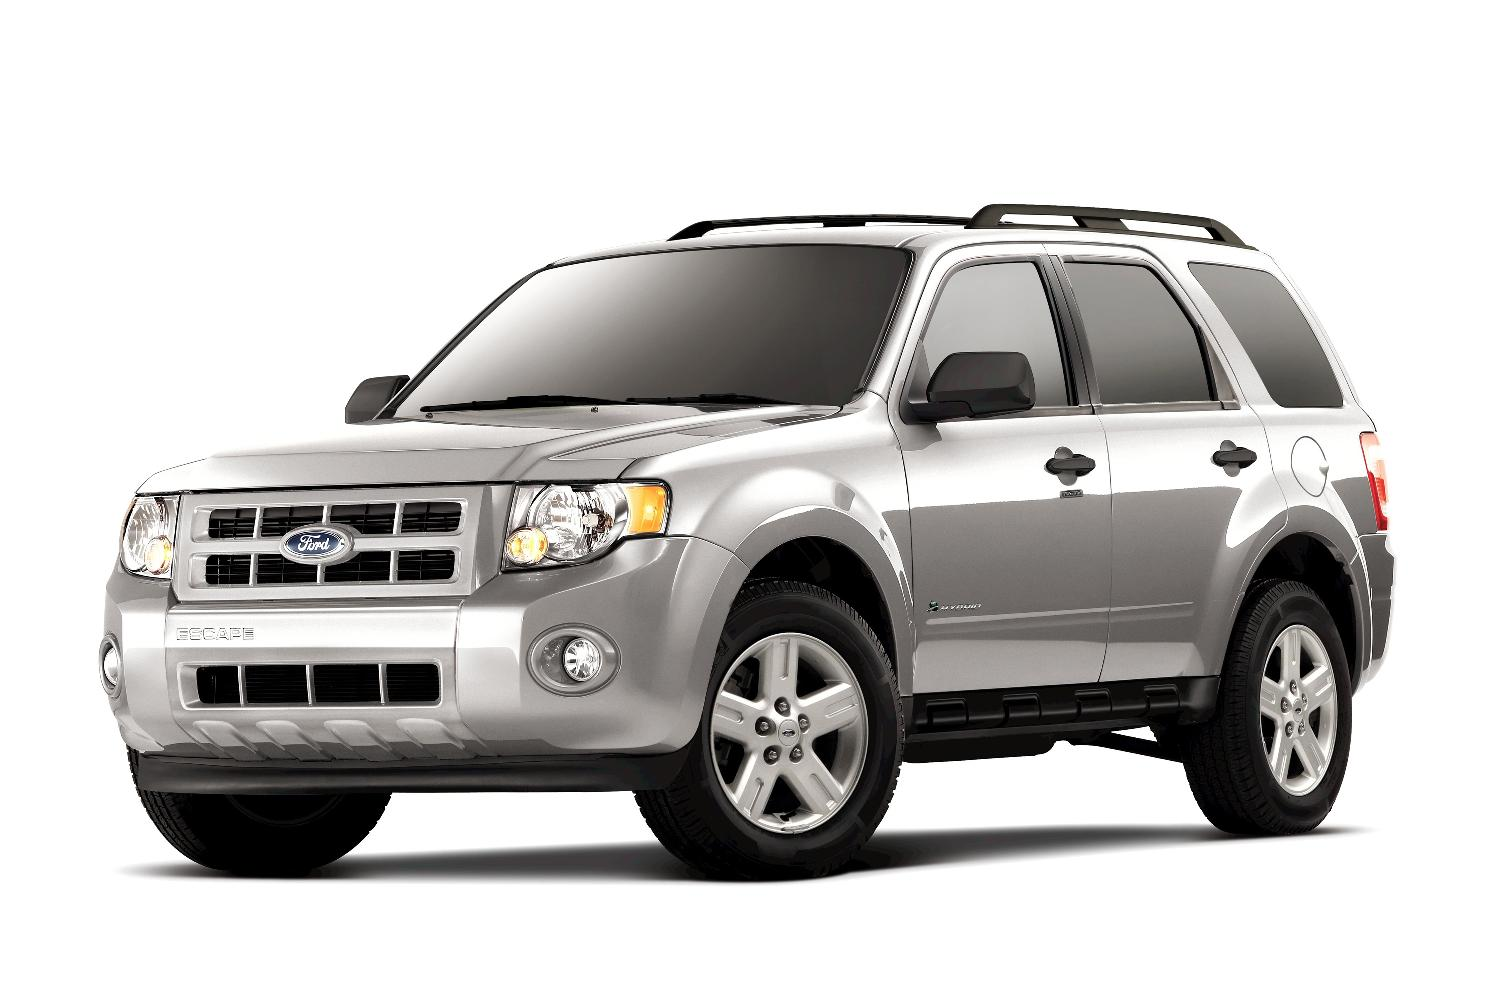 ford recalls 914 000 escape explorer suvs for power steering issue. Black Bedroom Furniture Sets. Home Design Ideas